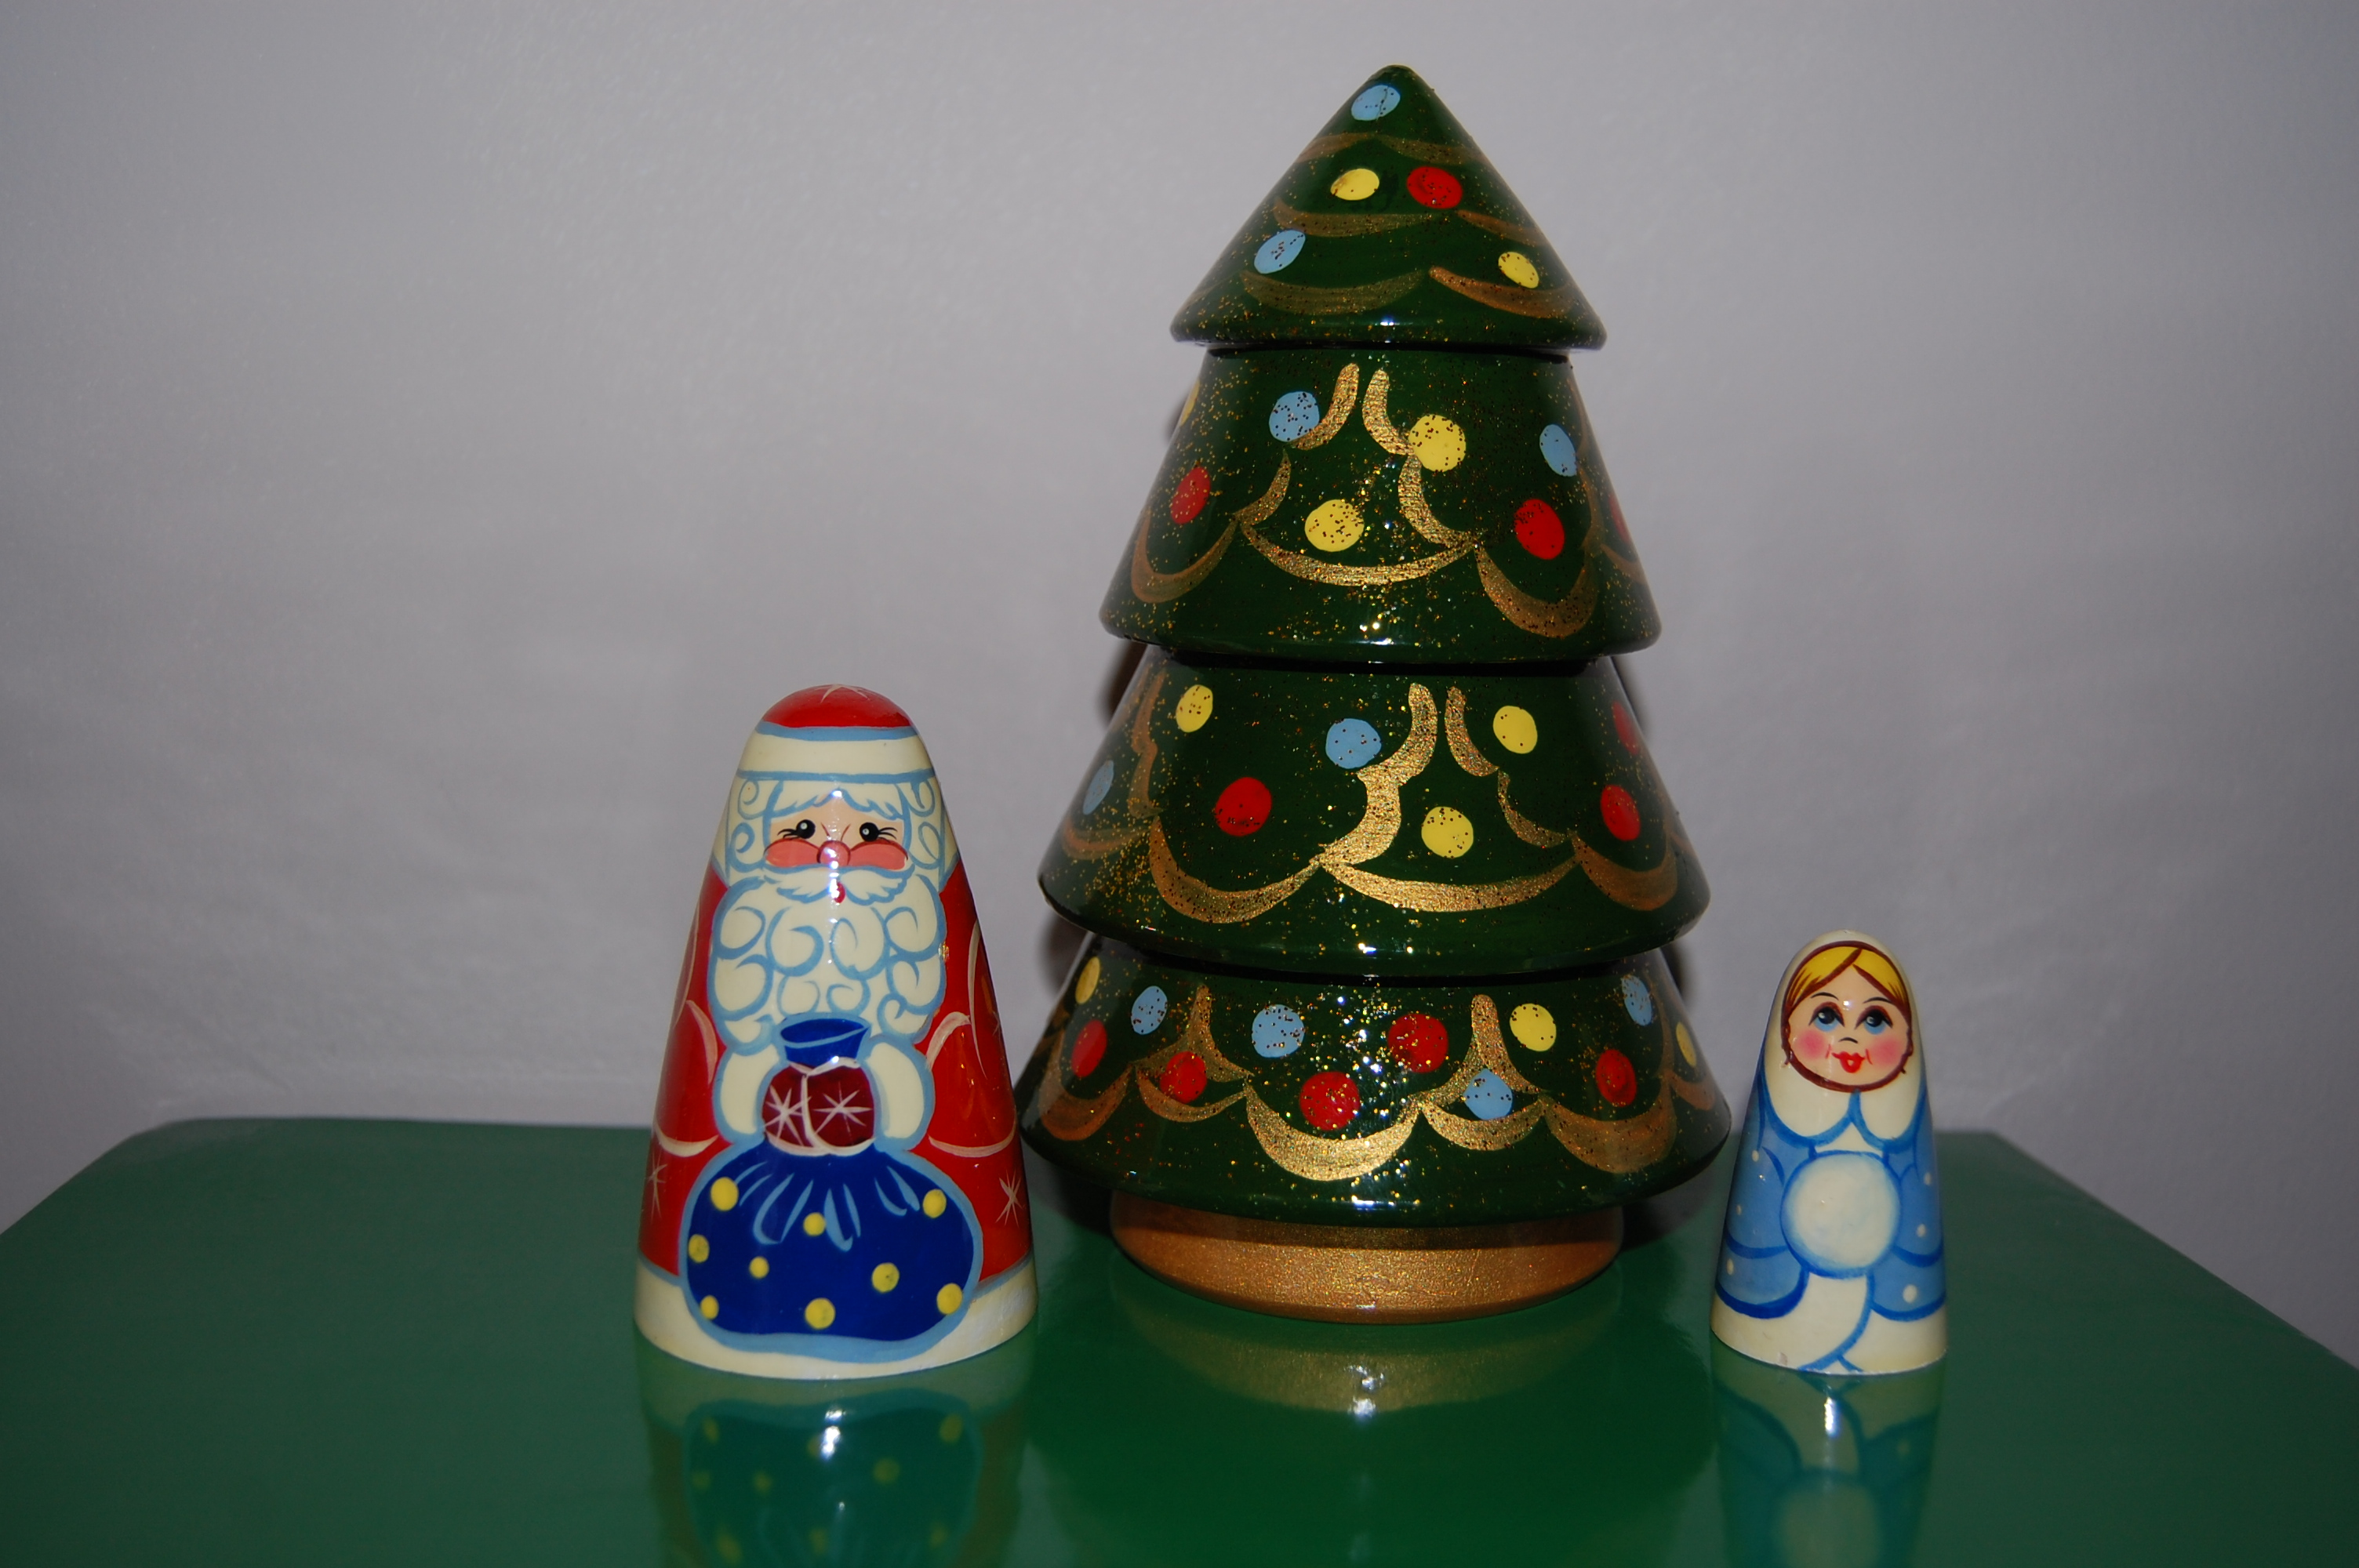 christmas tree nesting doll set 3pc6 in russian memories